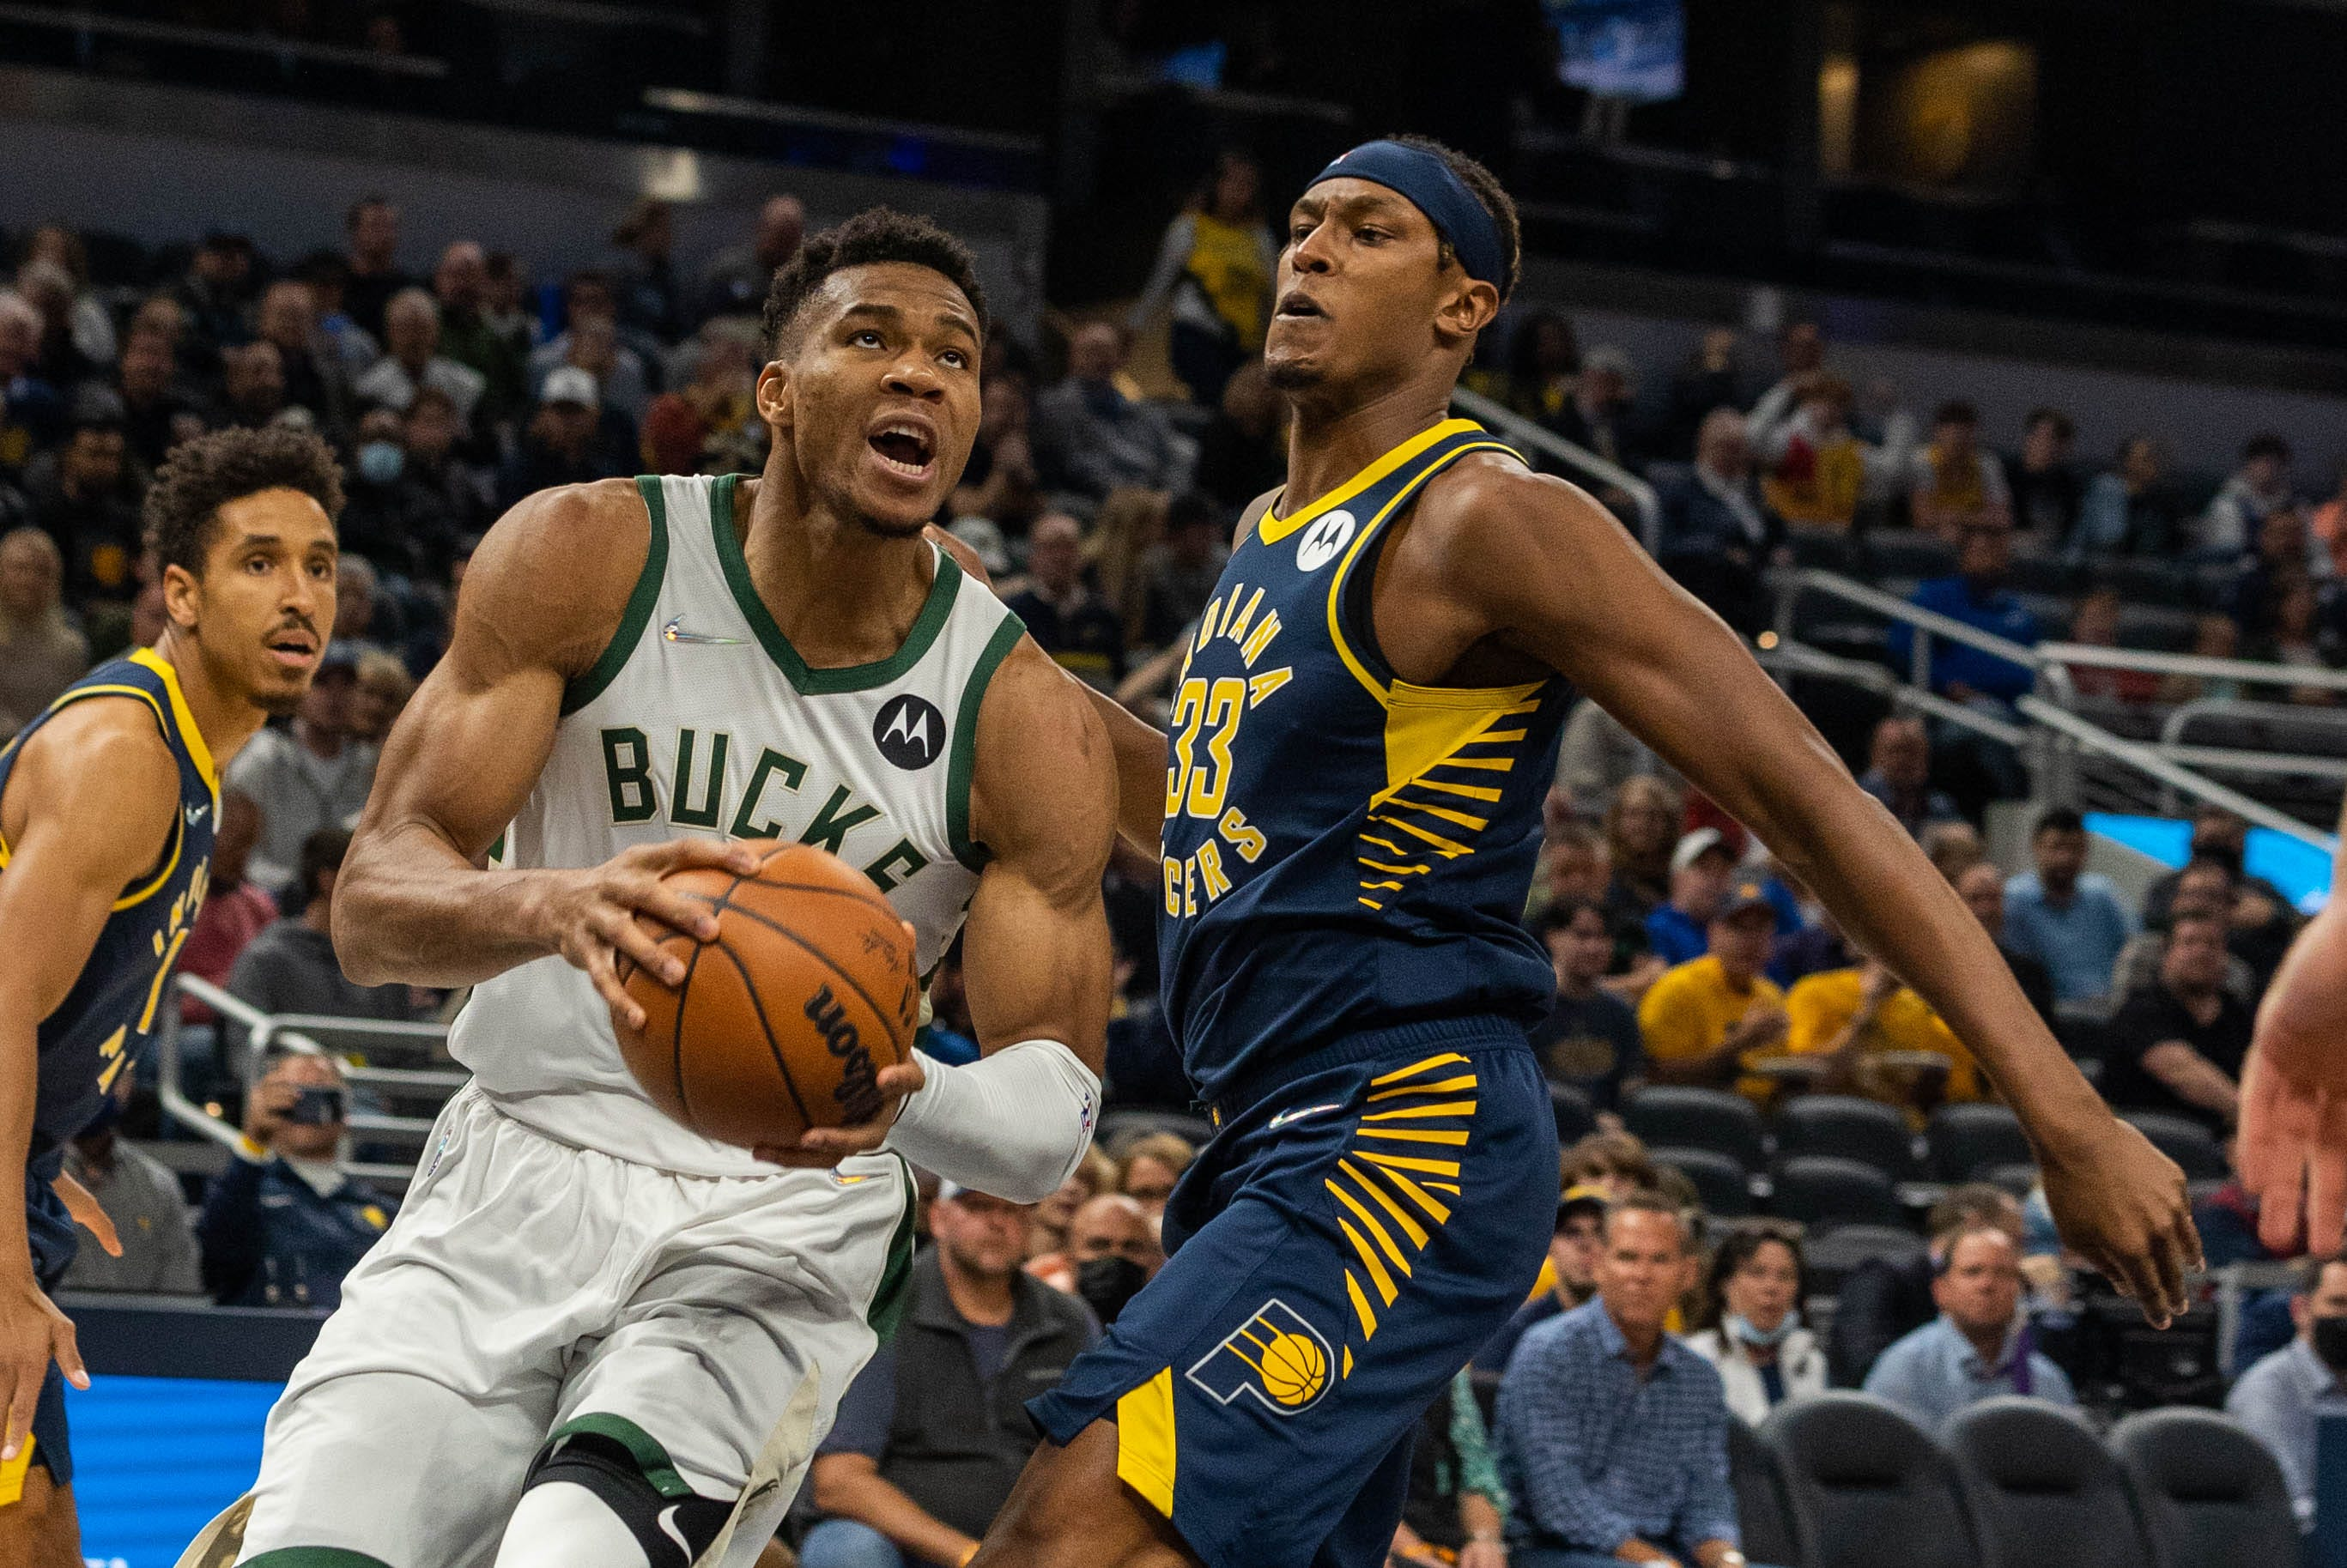 Pacers host Bucks, Giannis Antetokounmpo in NBA action